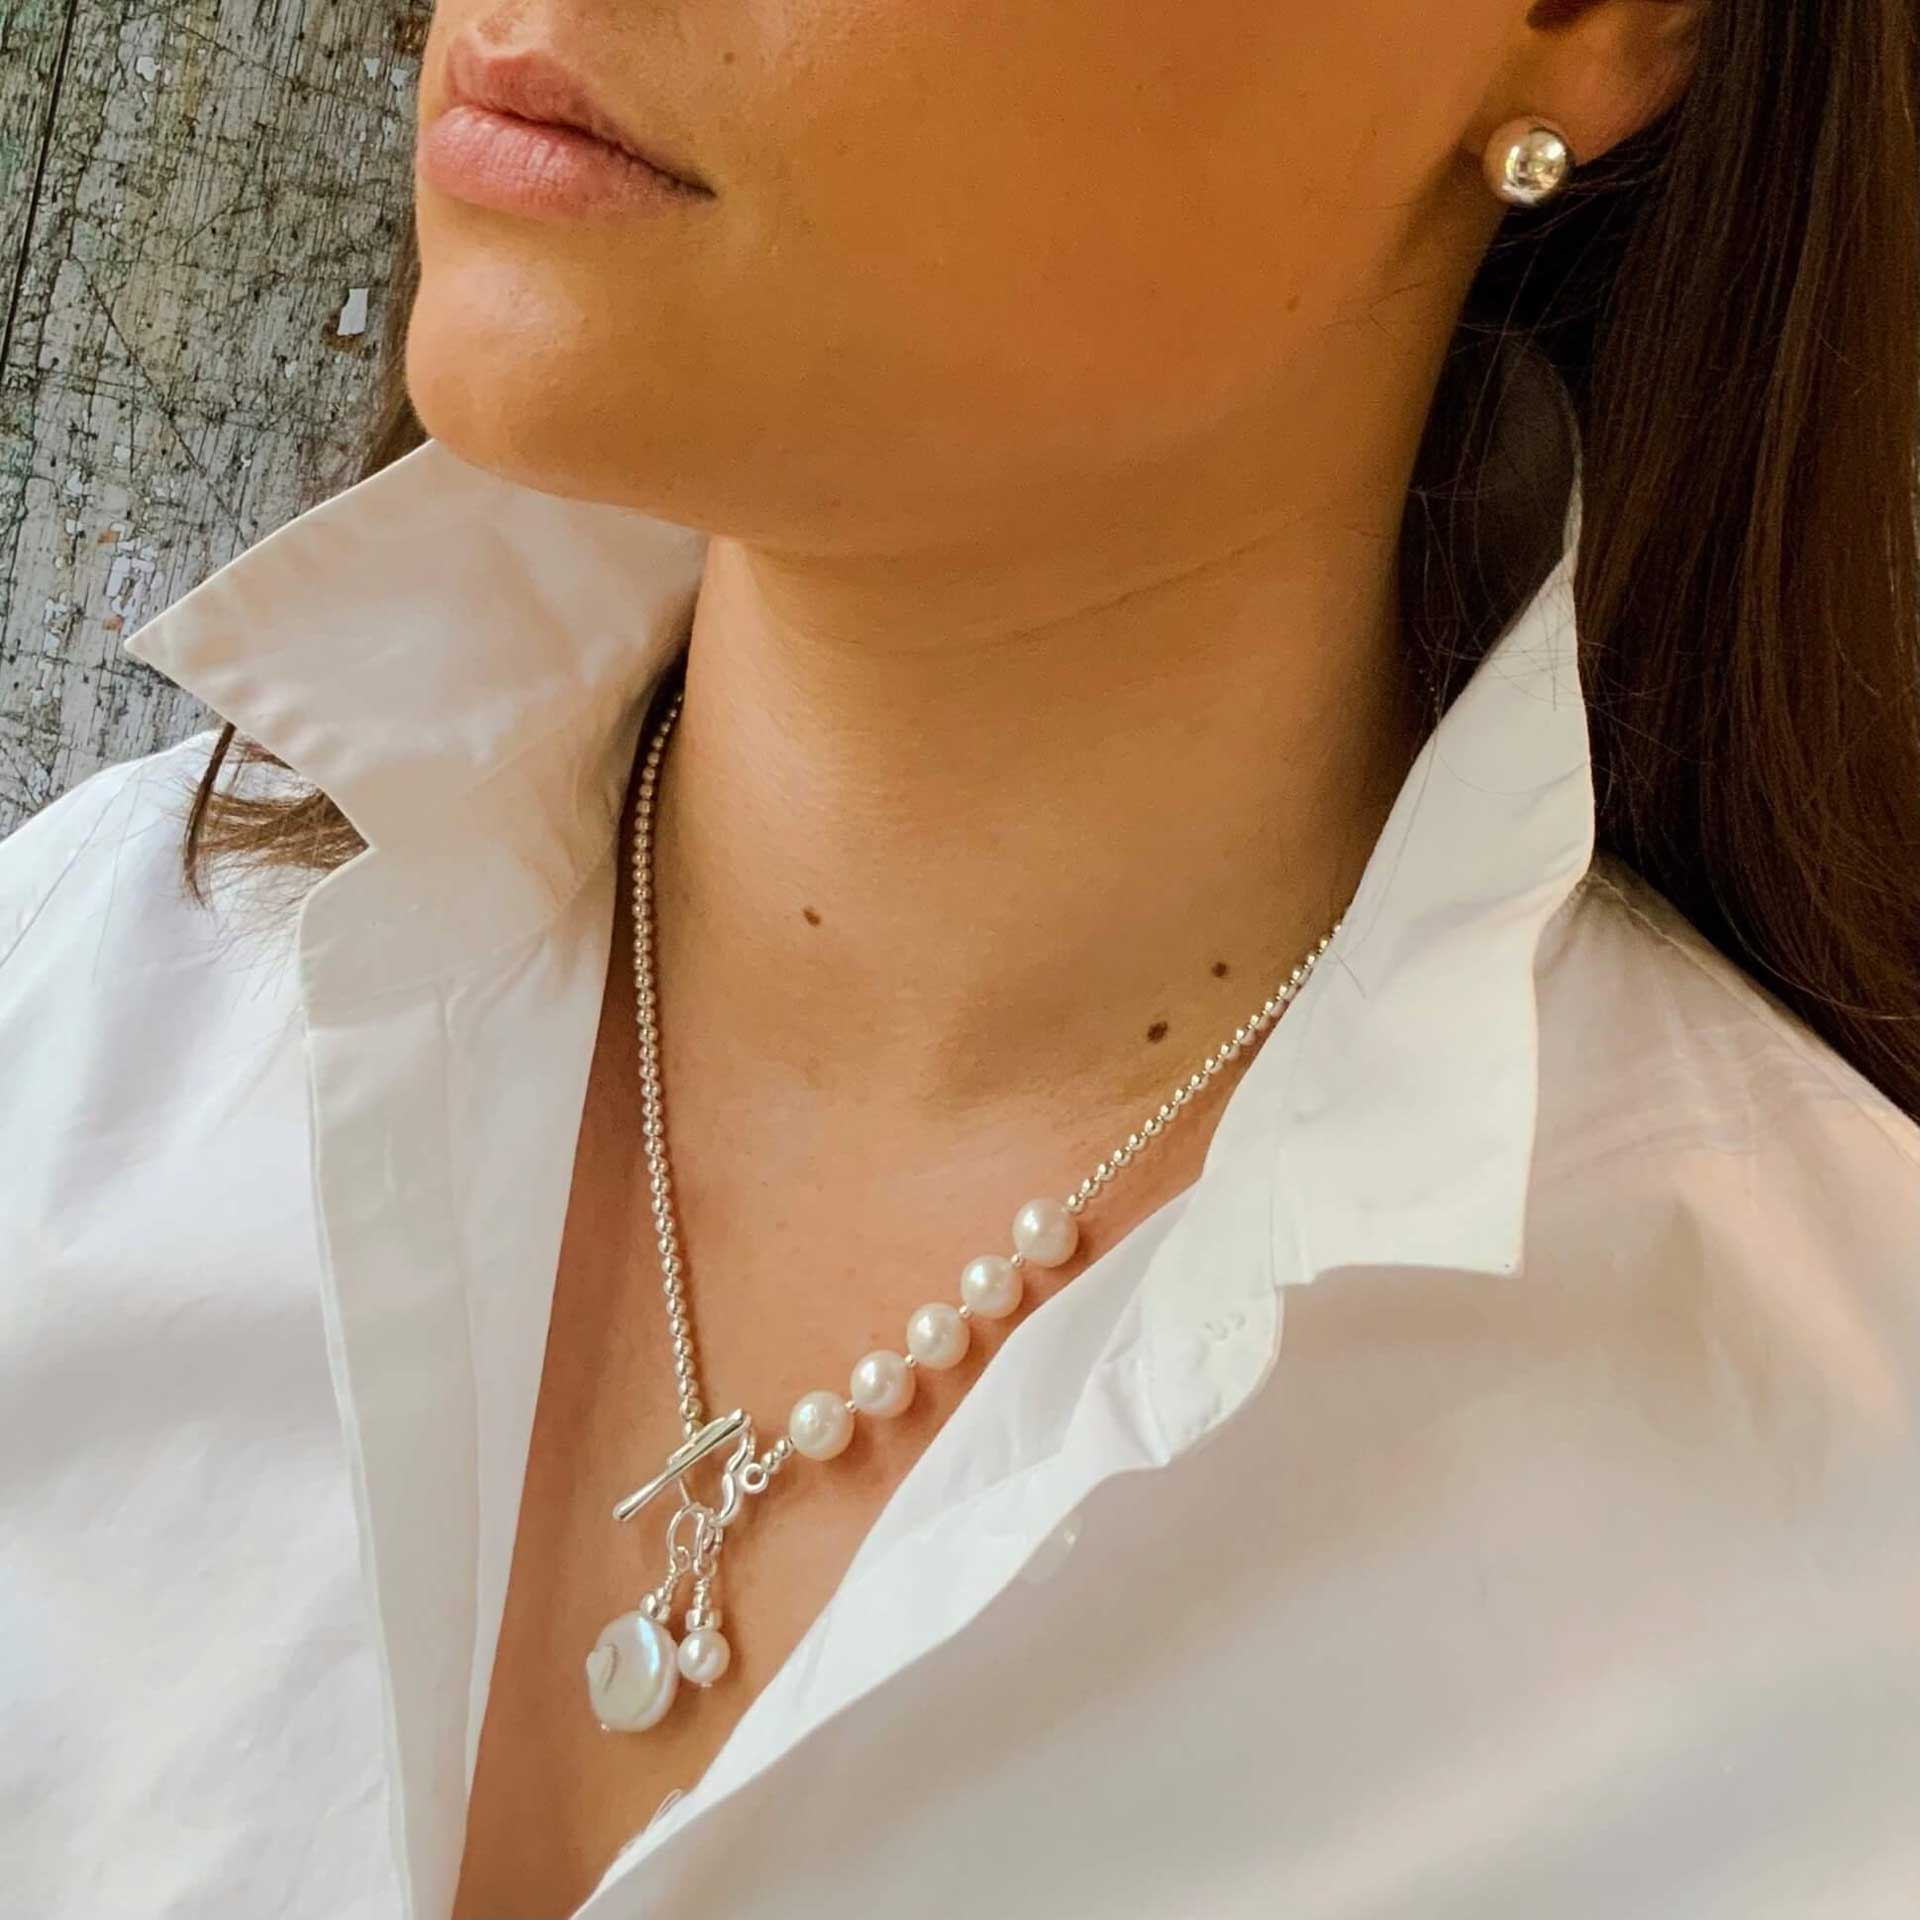 5-pearl-necklace-model